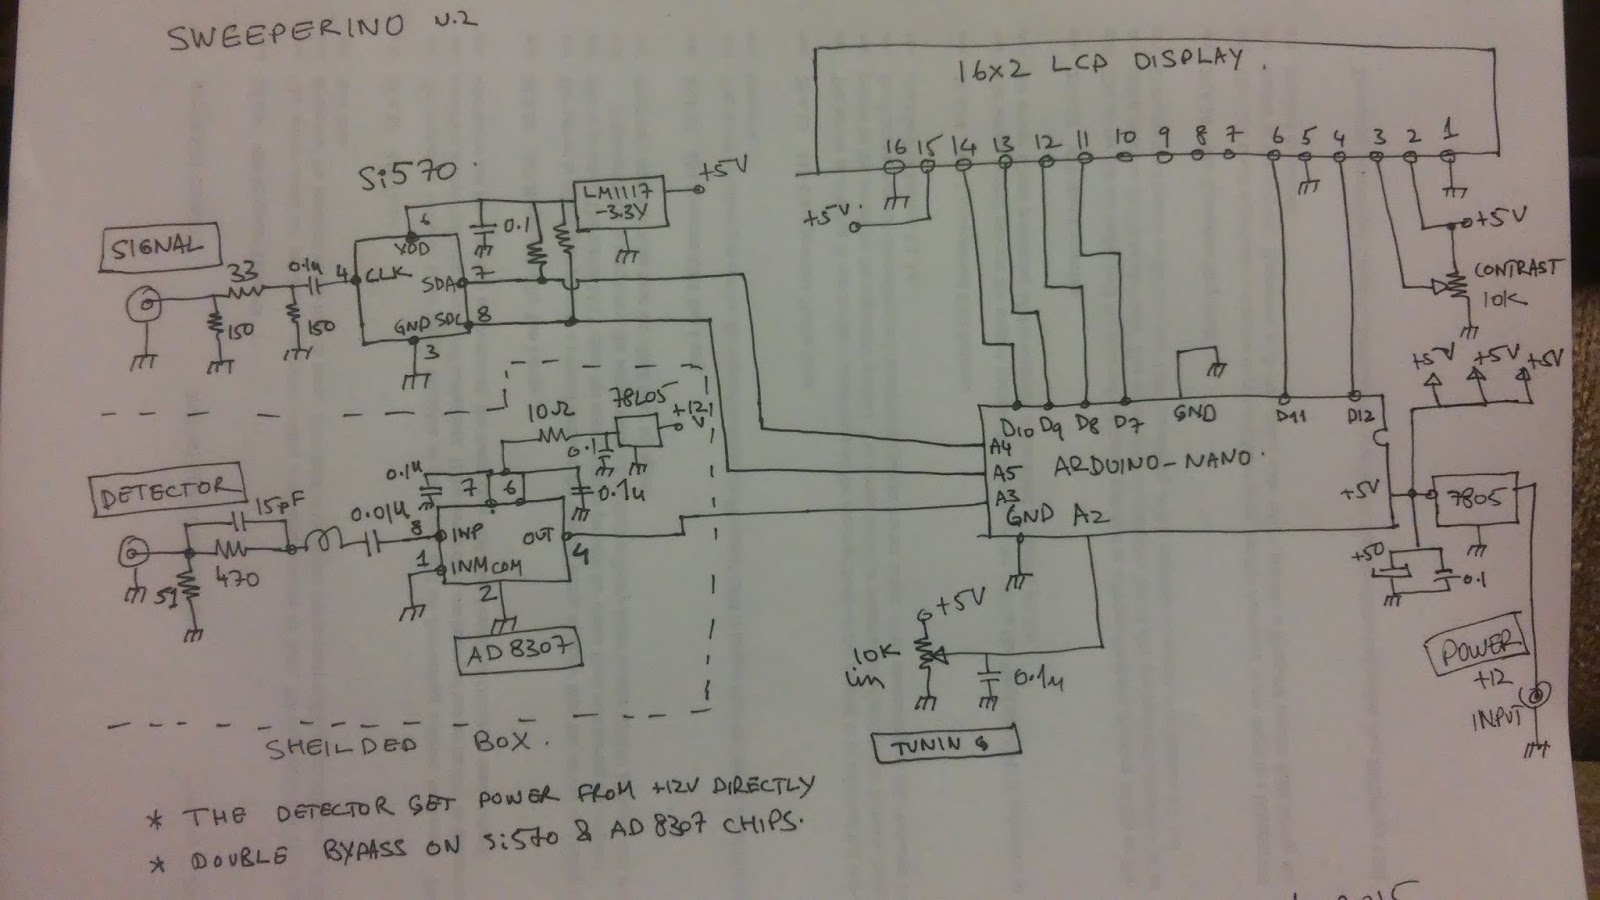 Vu2eses Radio Experiments Sweeperino Apc 500 Wiring Diagram Circuit Description